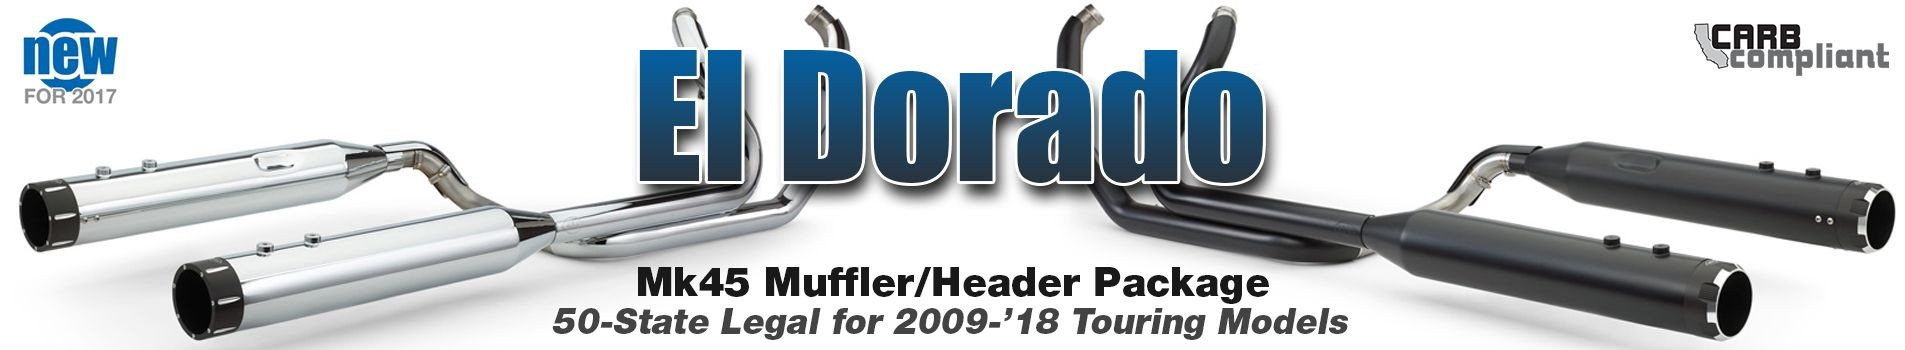 El Dorado 50-State Legal Exhaust Systems for 2009-'16 Touring